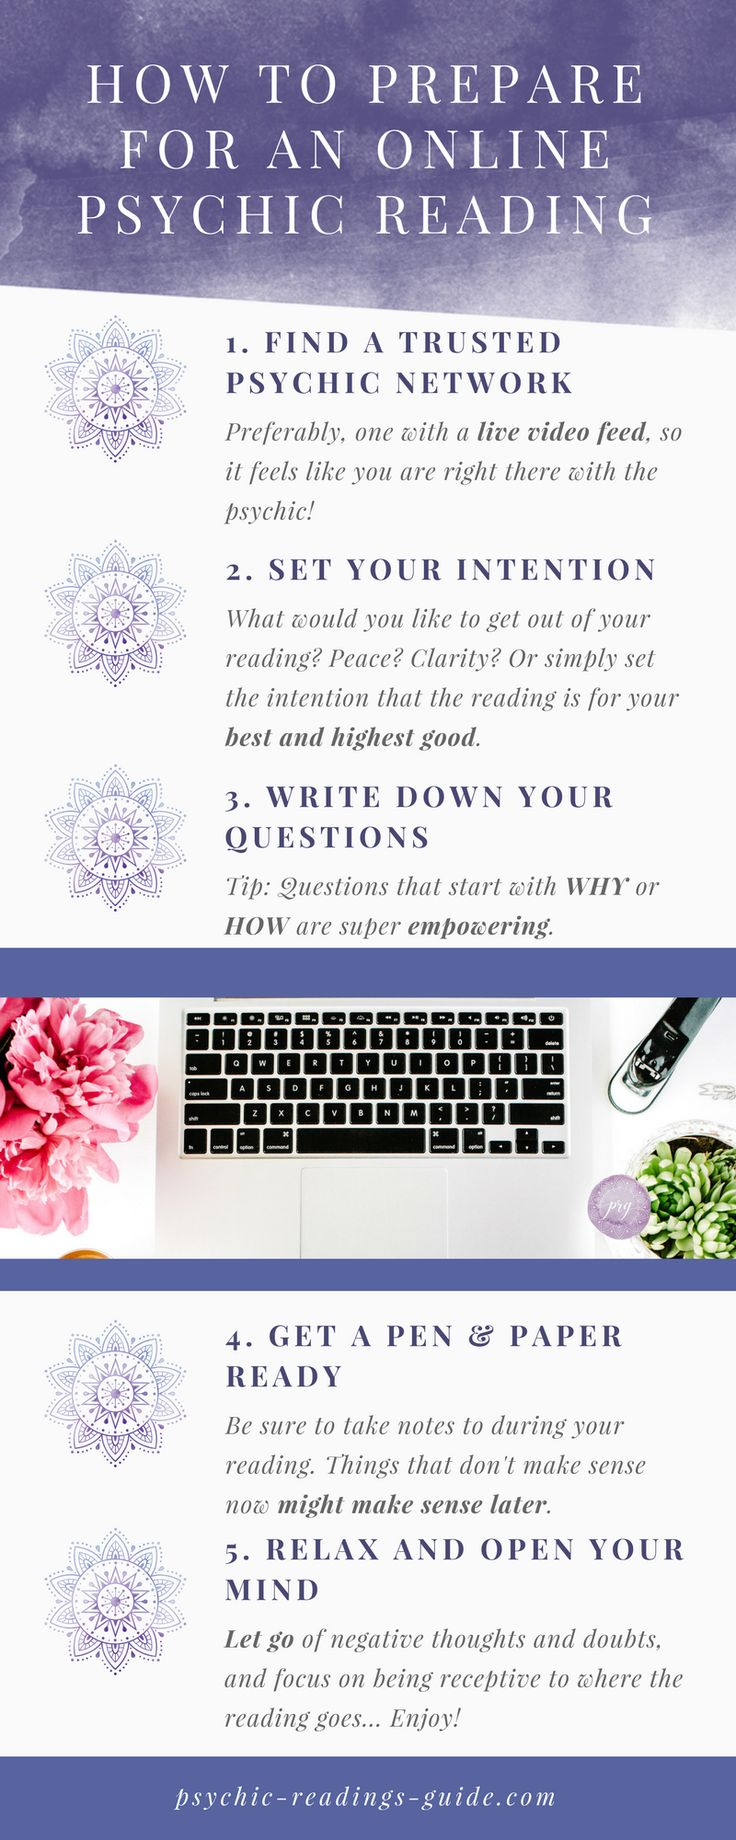 Online psychic readings are super fun, helpful, and the next best thing to getting a reading in person (plus, you can get a reading in your PJs!). To find out where to get the absolute best psychic reading online, visit: http://www.psychic-readings-guide.com/best-psychic-chat-online/